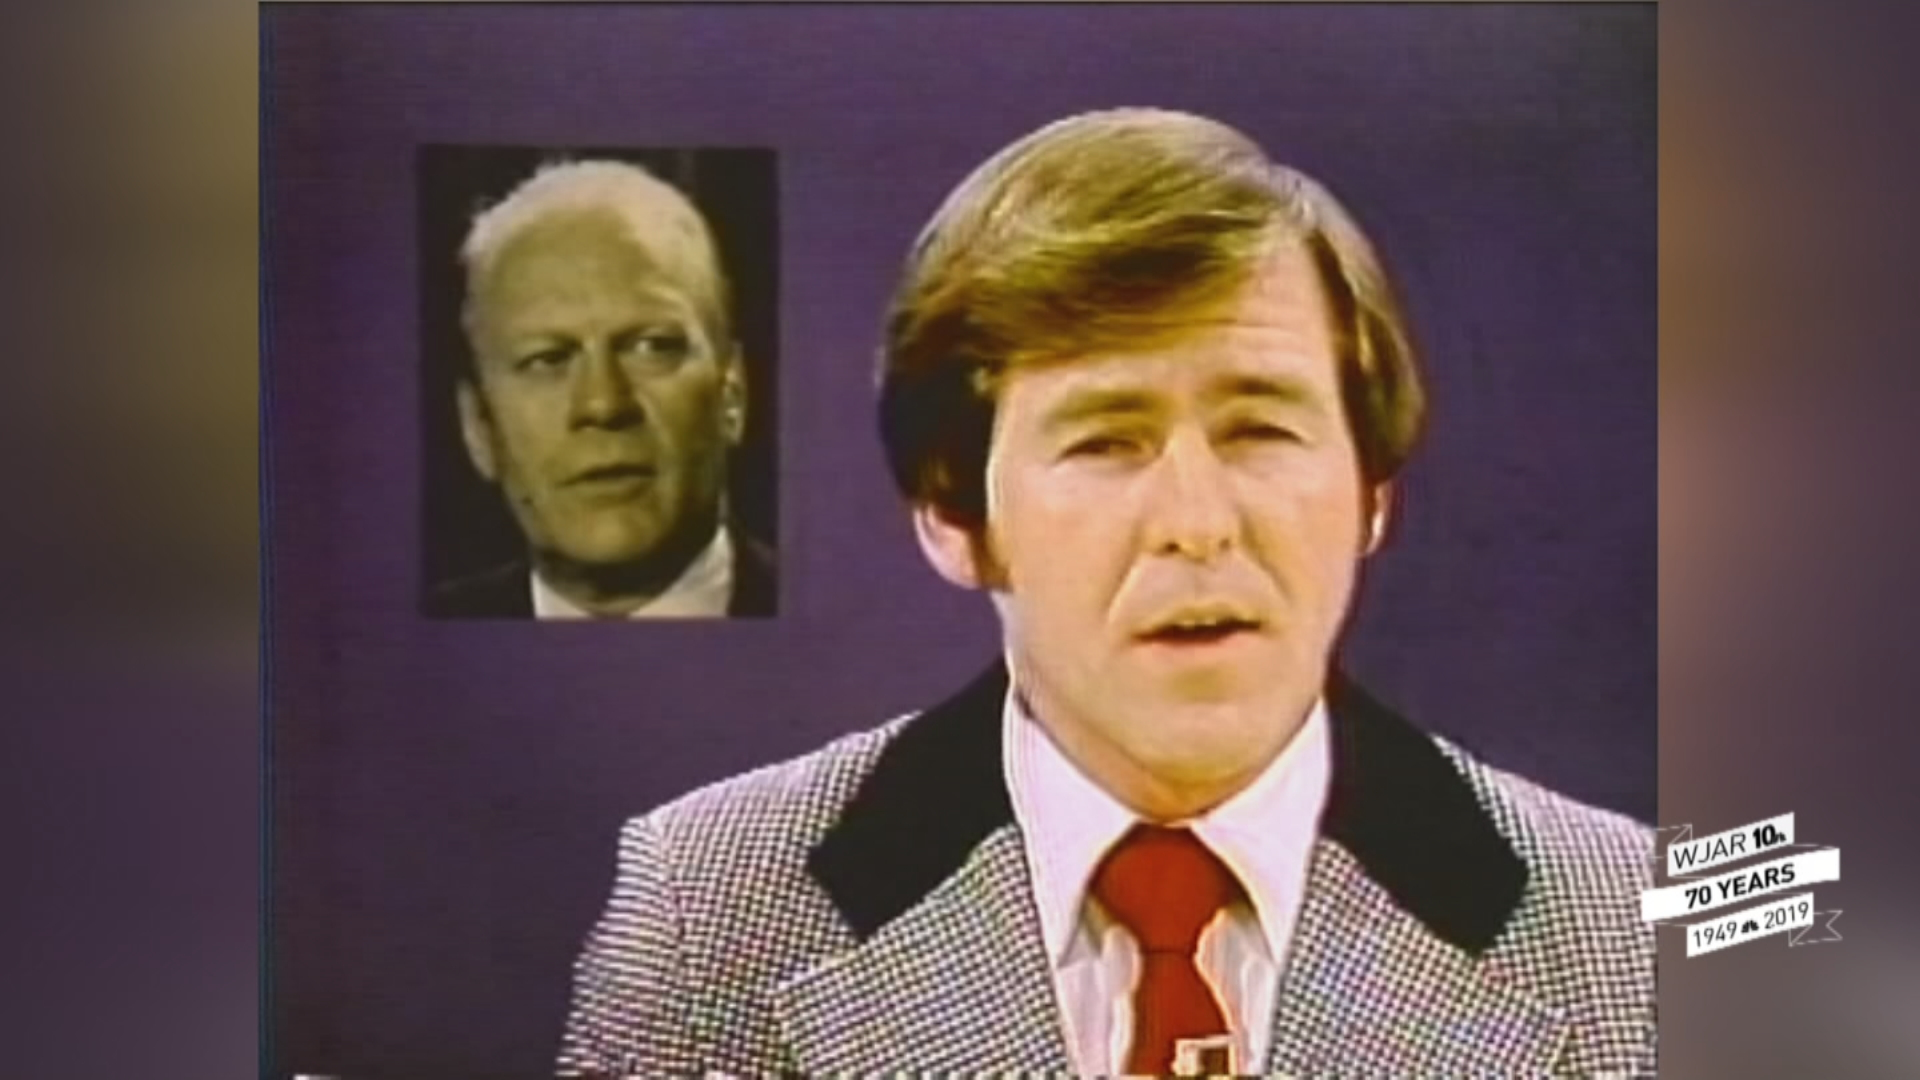 Dave Layman anchored for about two years beginning in 1974. (WJAR)